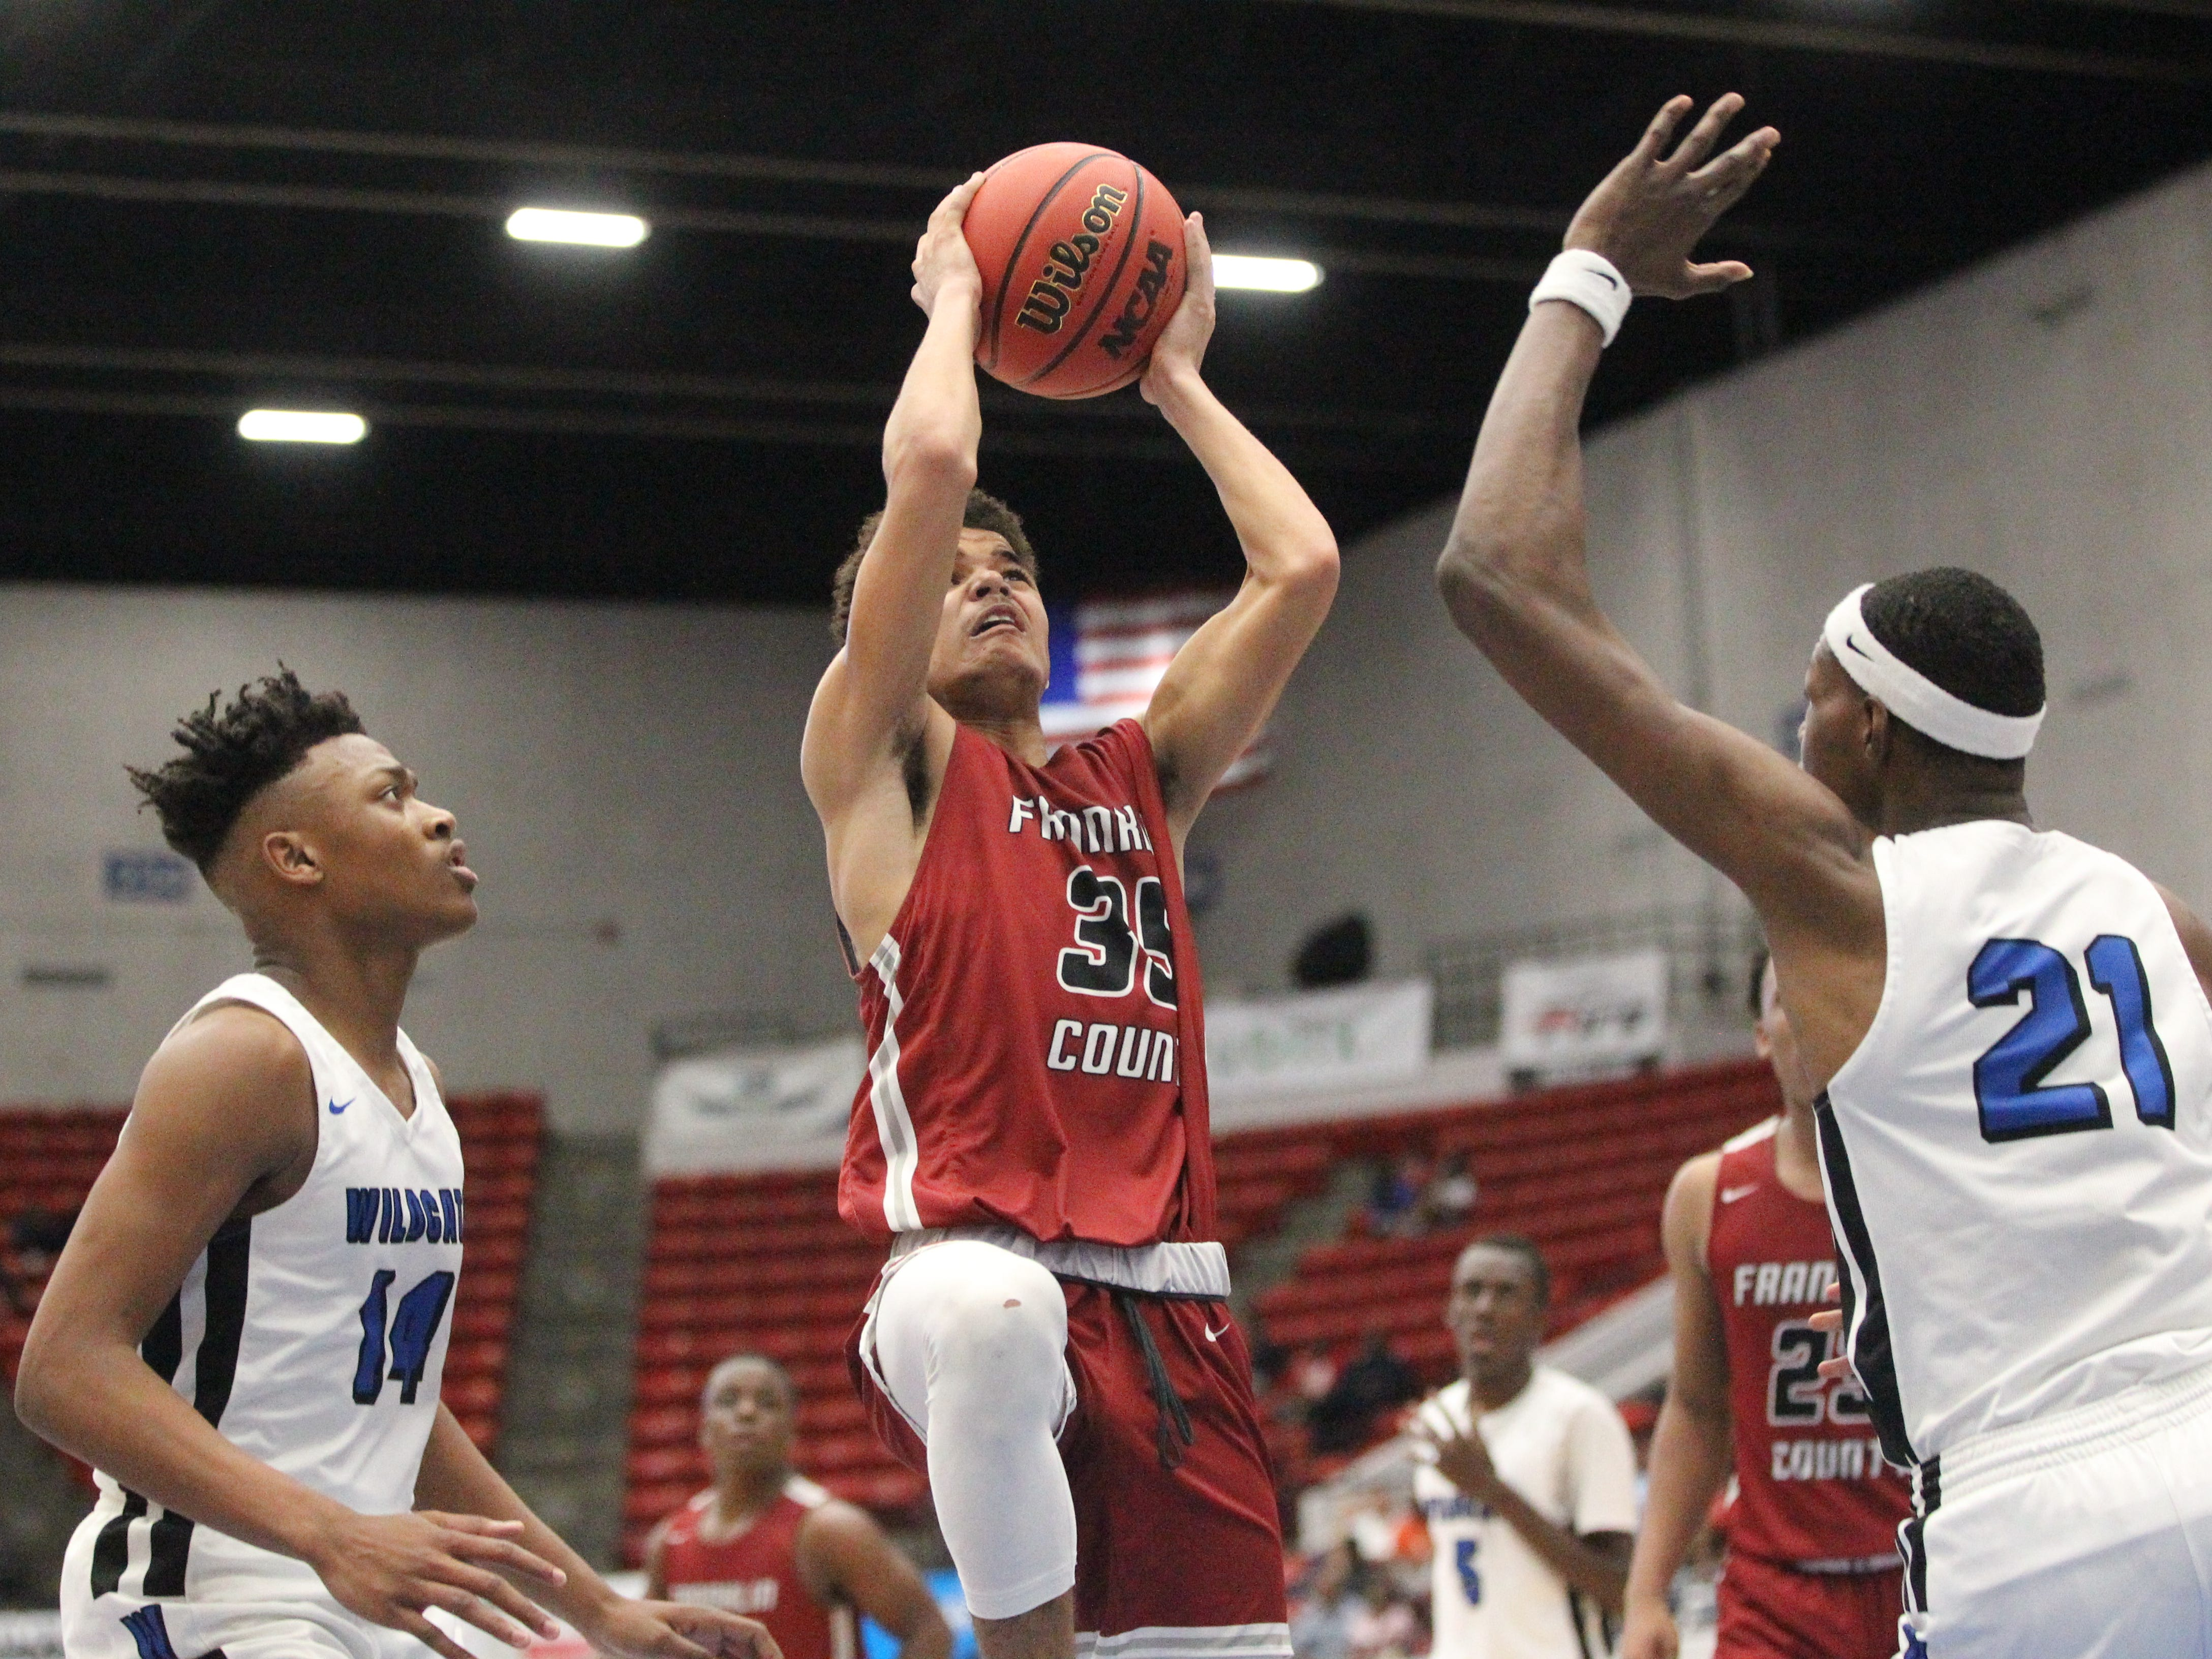 Franklin County sophomore Lamarius Martin hangs in the air for a basket as the Seahawks lost 76-62 to Wildwood during a Class 1A state semifinal at the RP Funding Center in Lakeland on March 4, 2019.